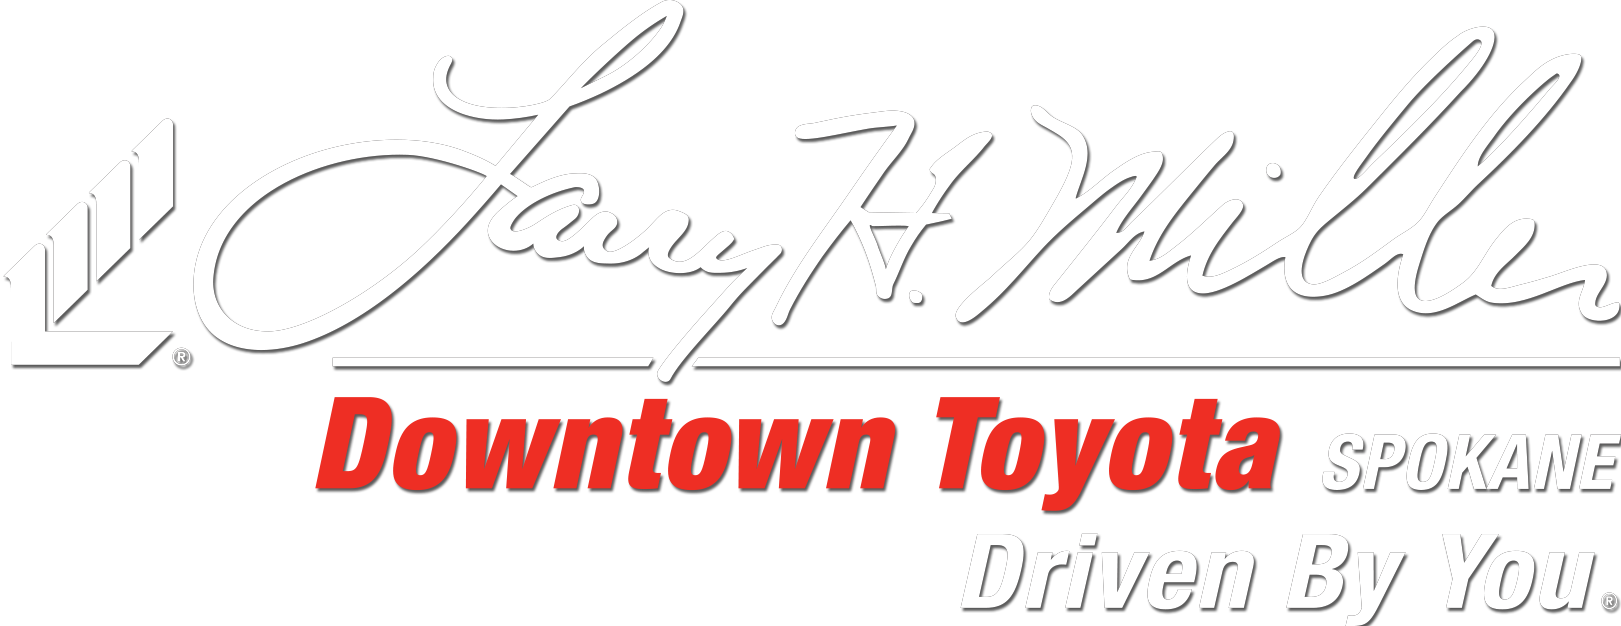 larry h miller downtown toyota new used toyota in spokane wa also serving pullman wa. Black Bedroom Furniture Sets. Home Design Ideas